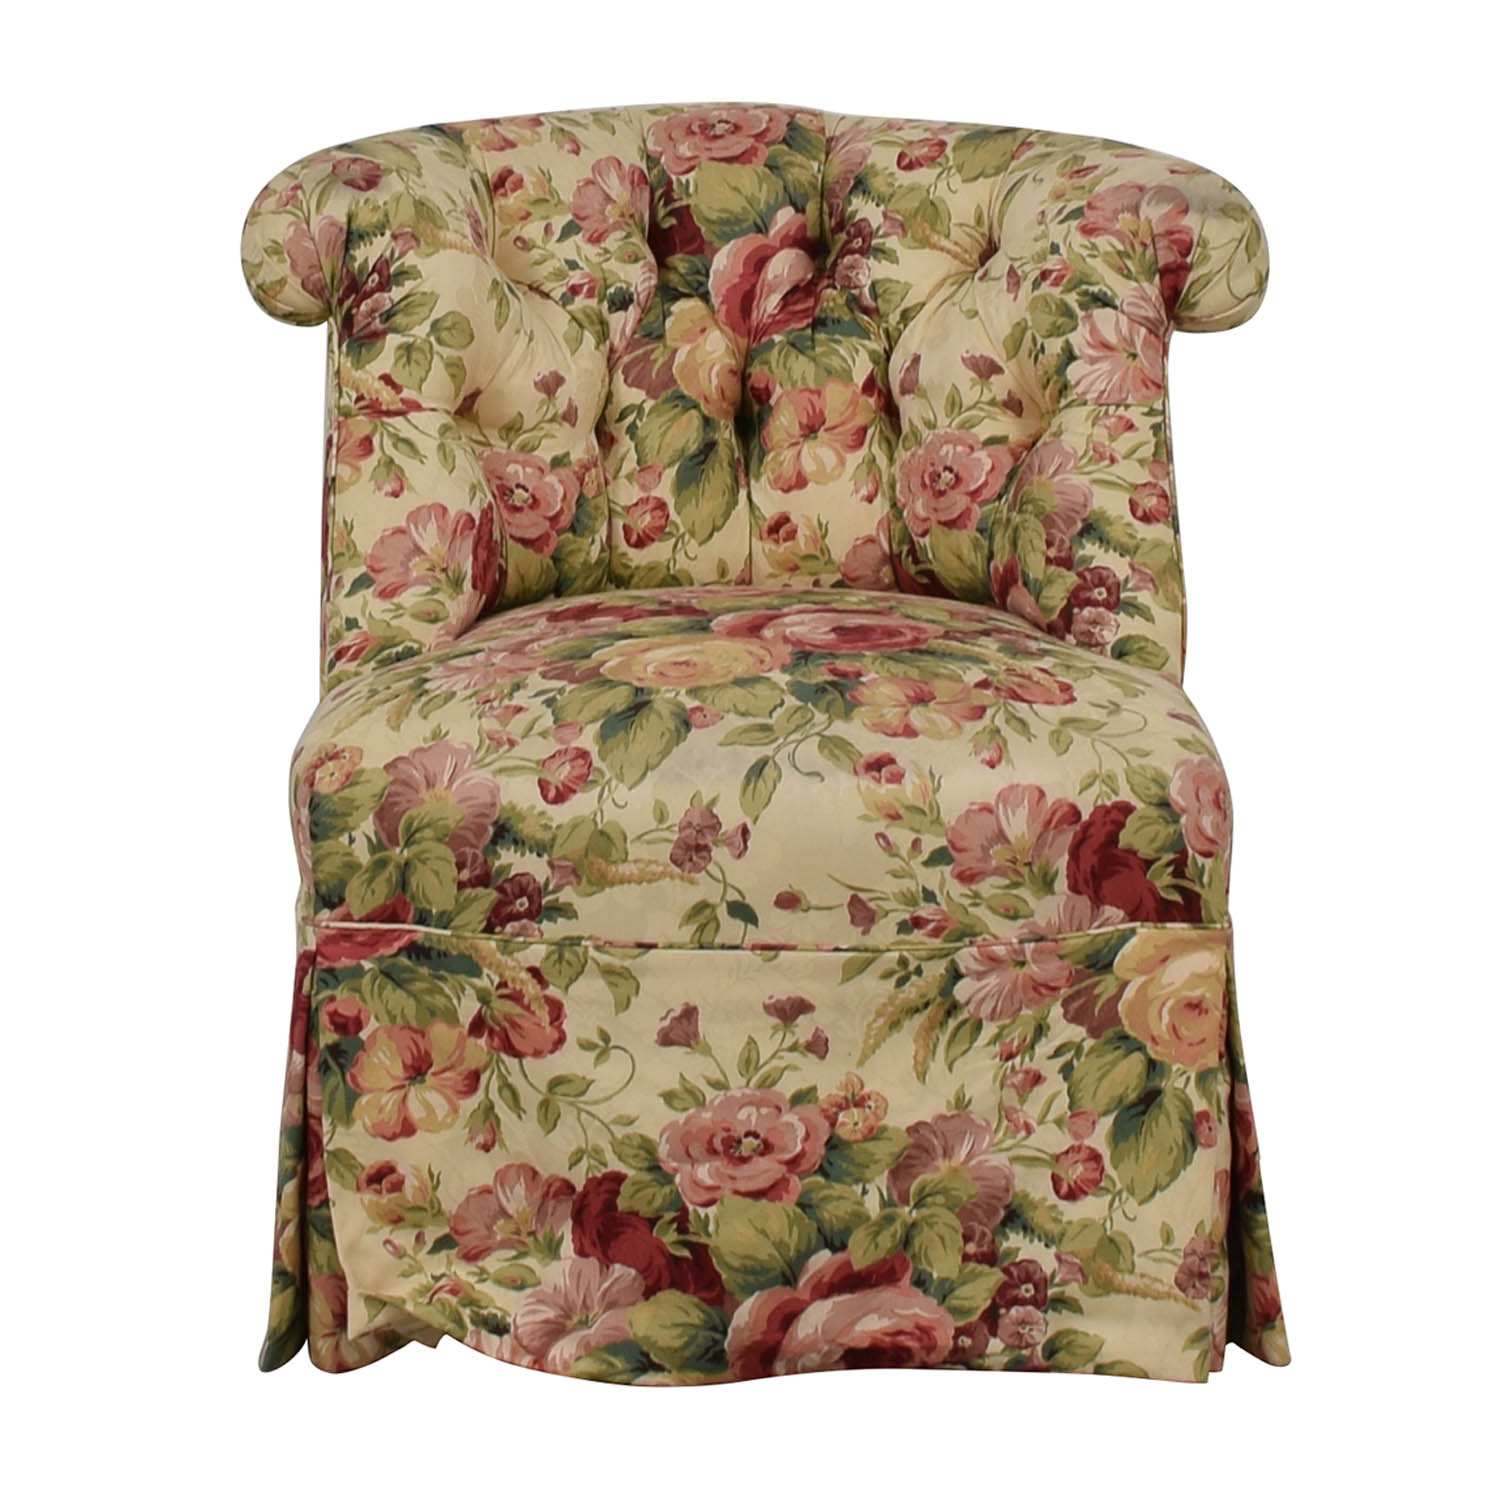 buy Furniture Masters Furniture Masters Floral Accent Chair online